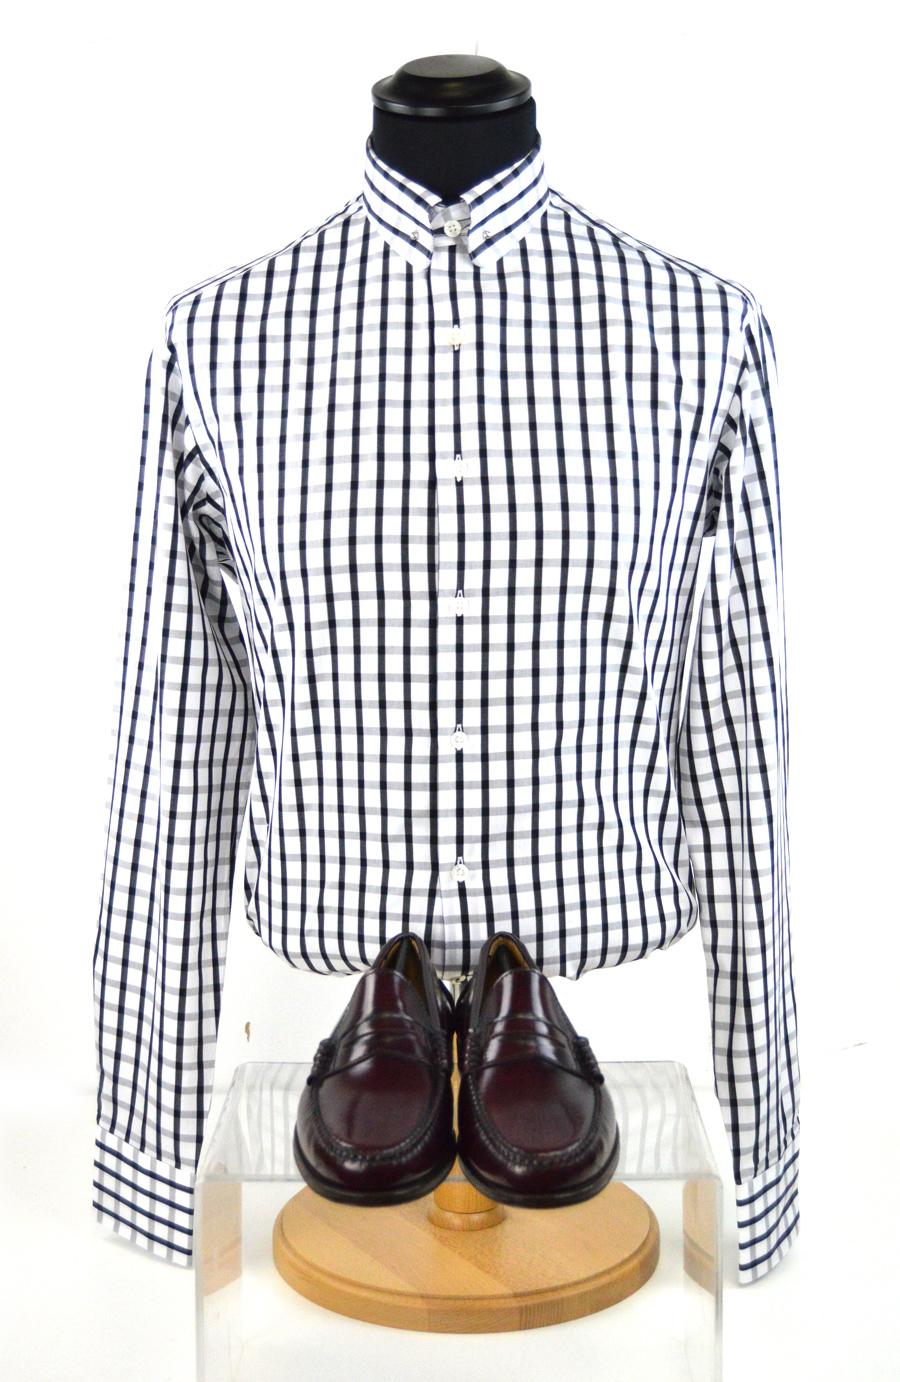 modshoes-oxblood-loafers-with-hawkins-checked-shirt